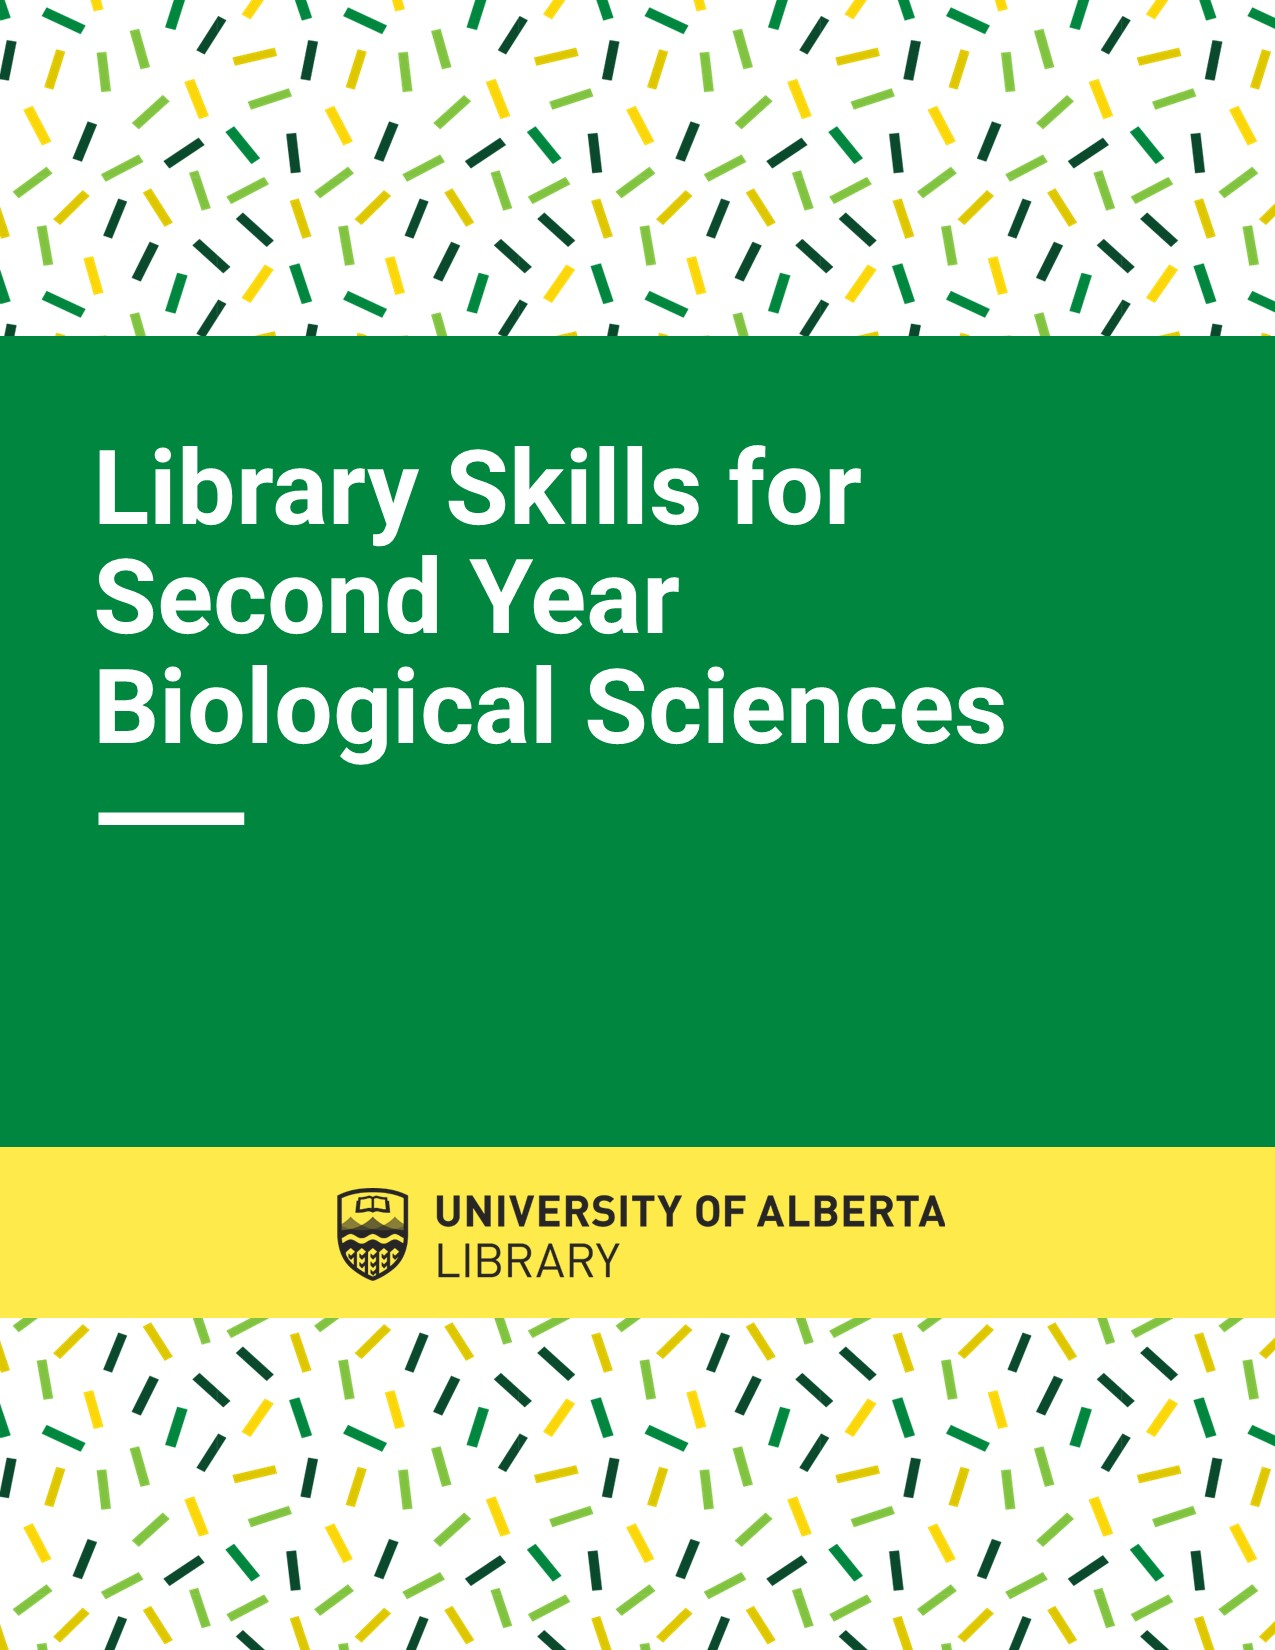 Cover image for Library Skills for 2nd Year Biological Sciences